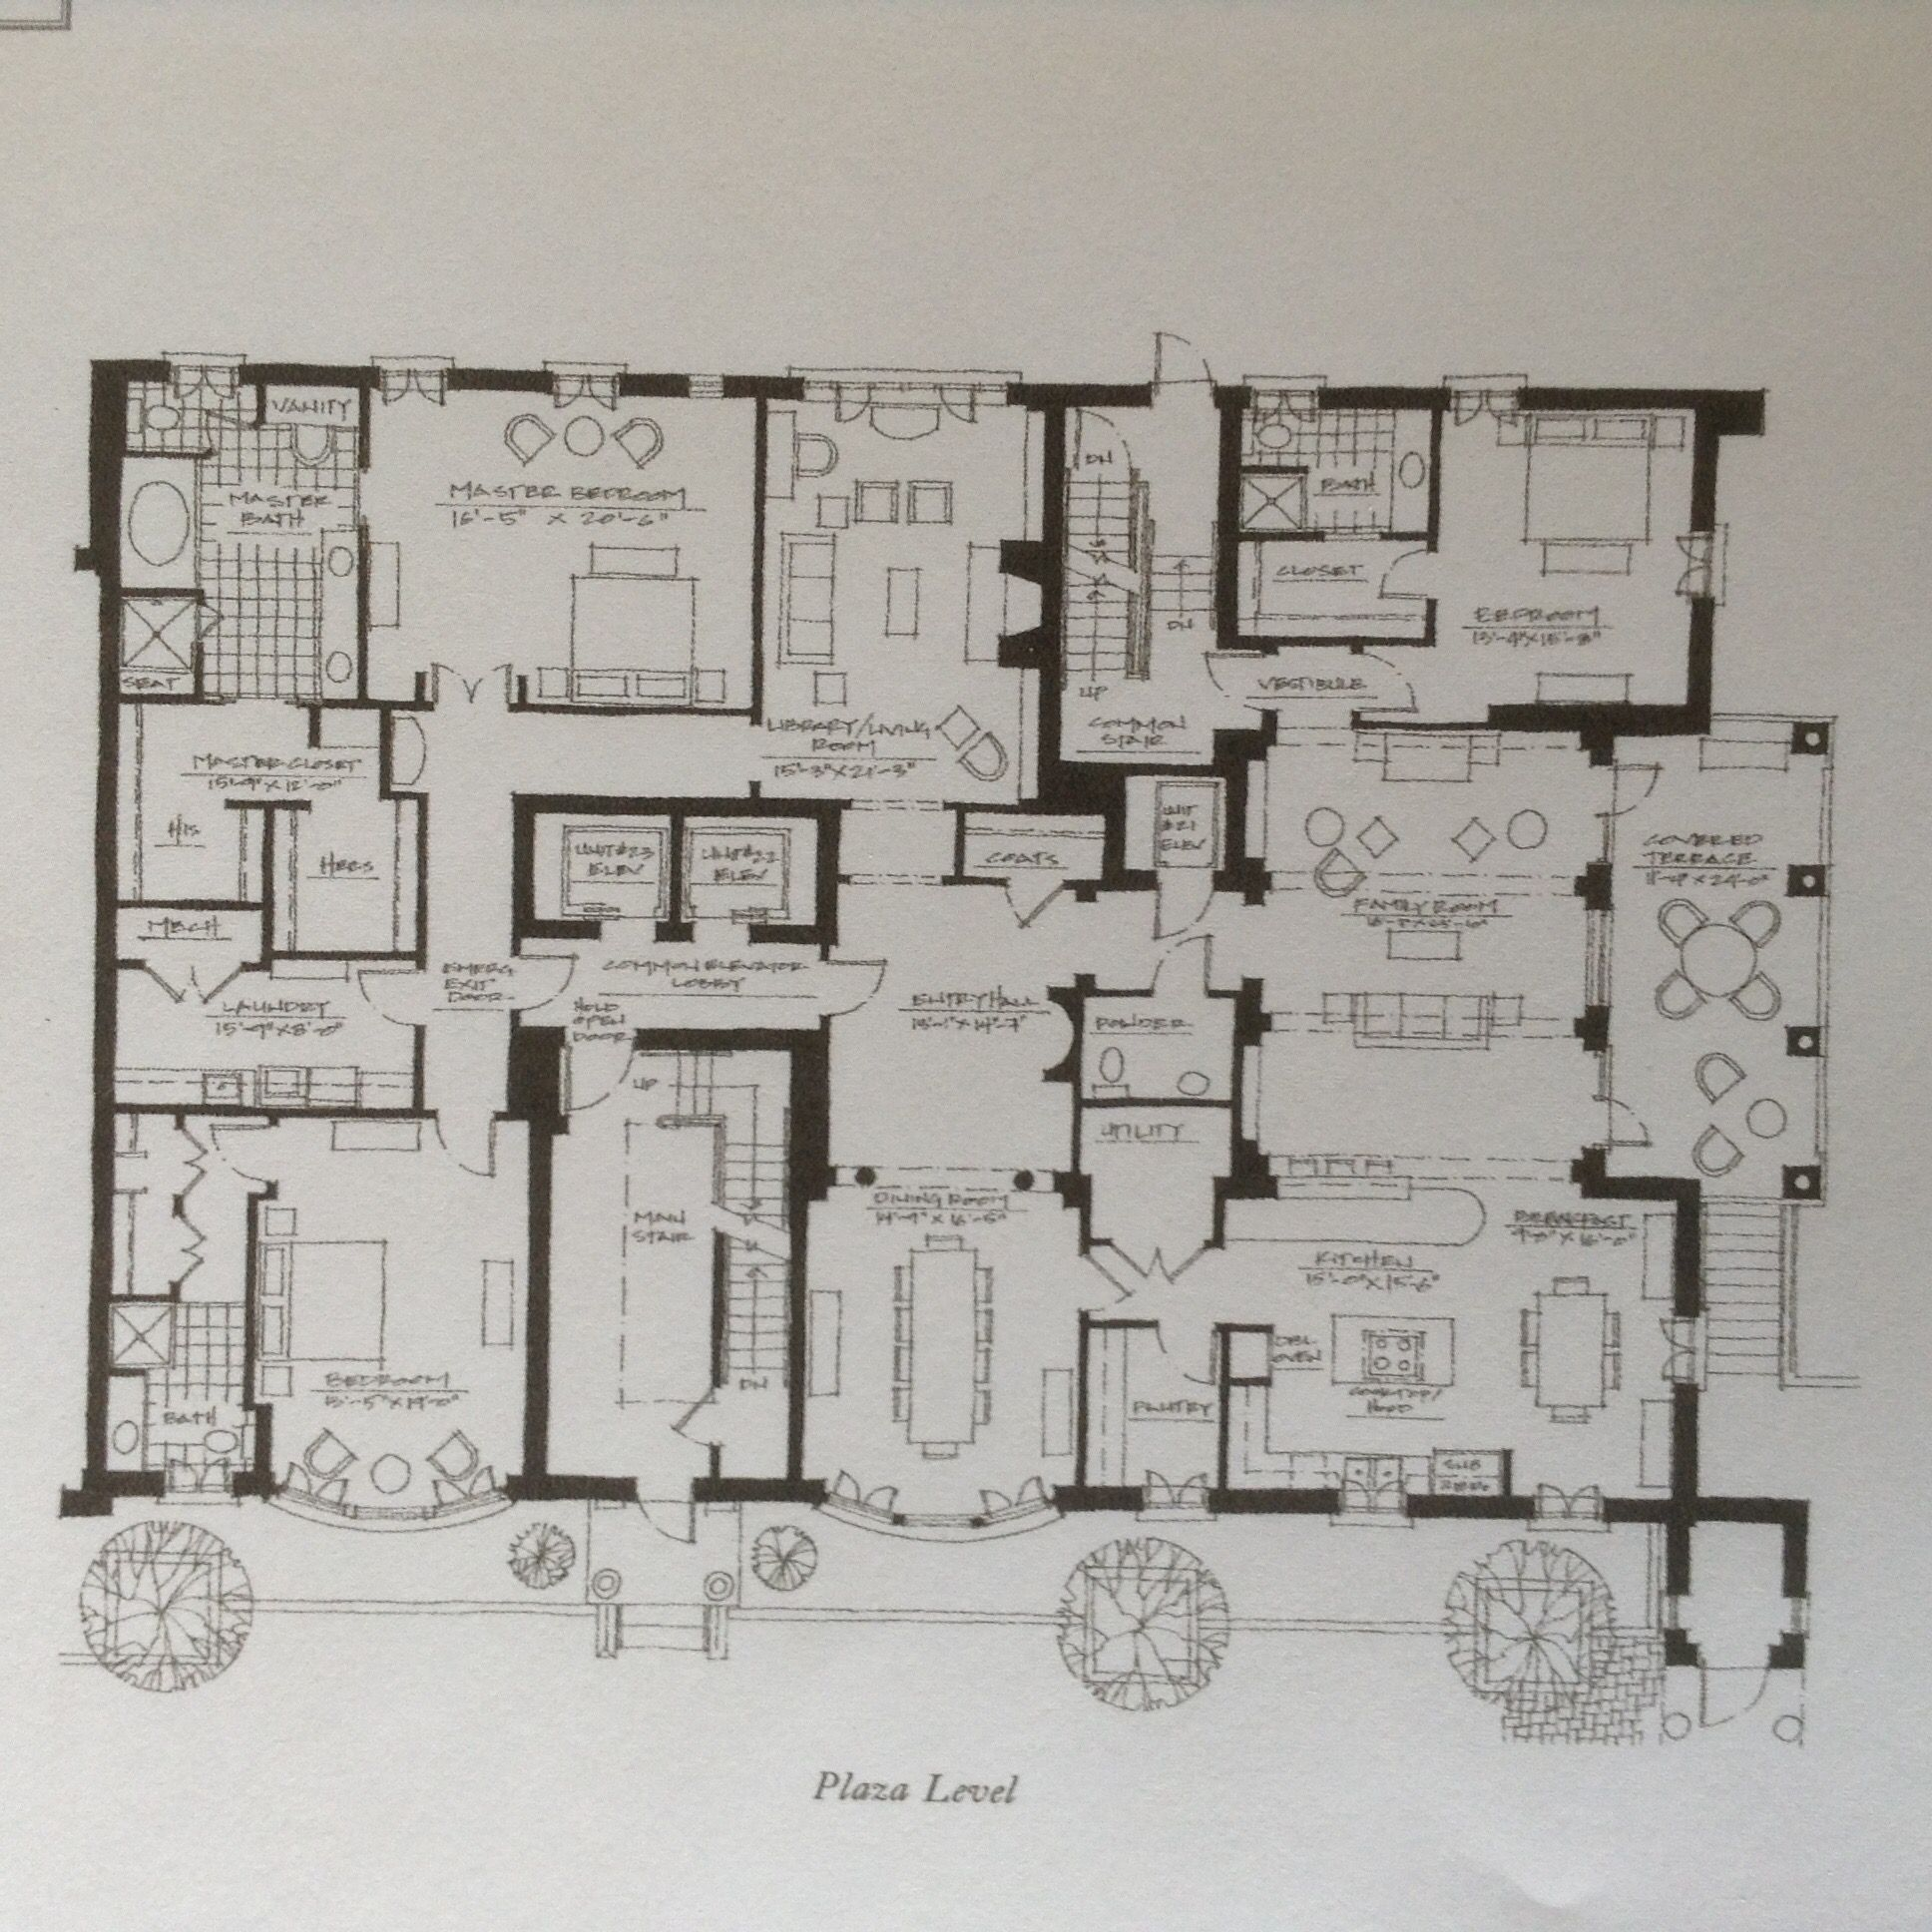 Regents Park Townhome Atlanta Plaza Level Flat Floor Plans House Plans Elevation Plan